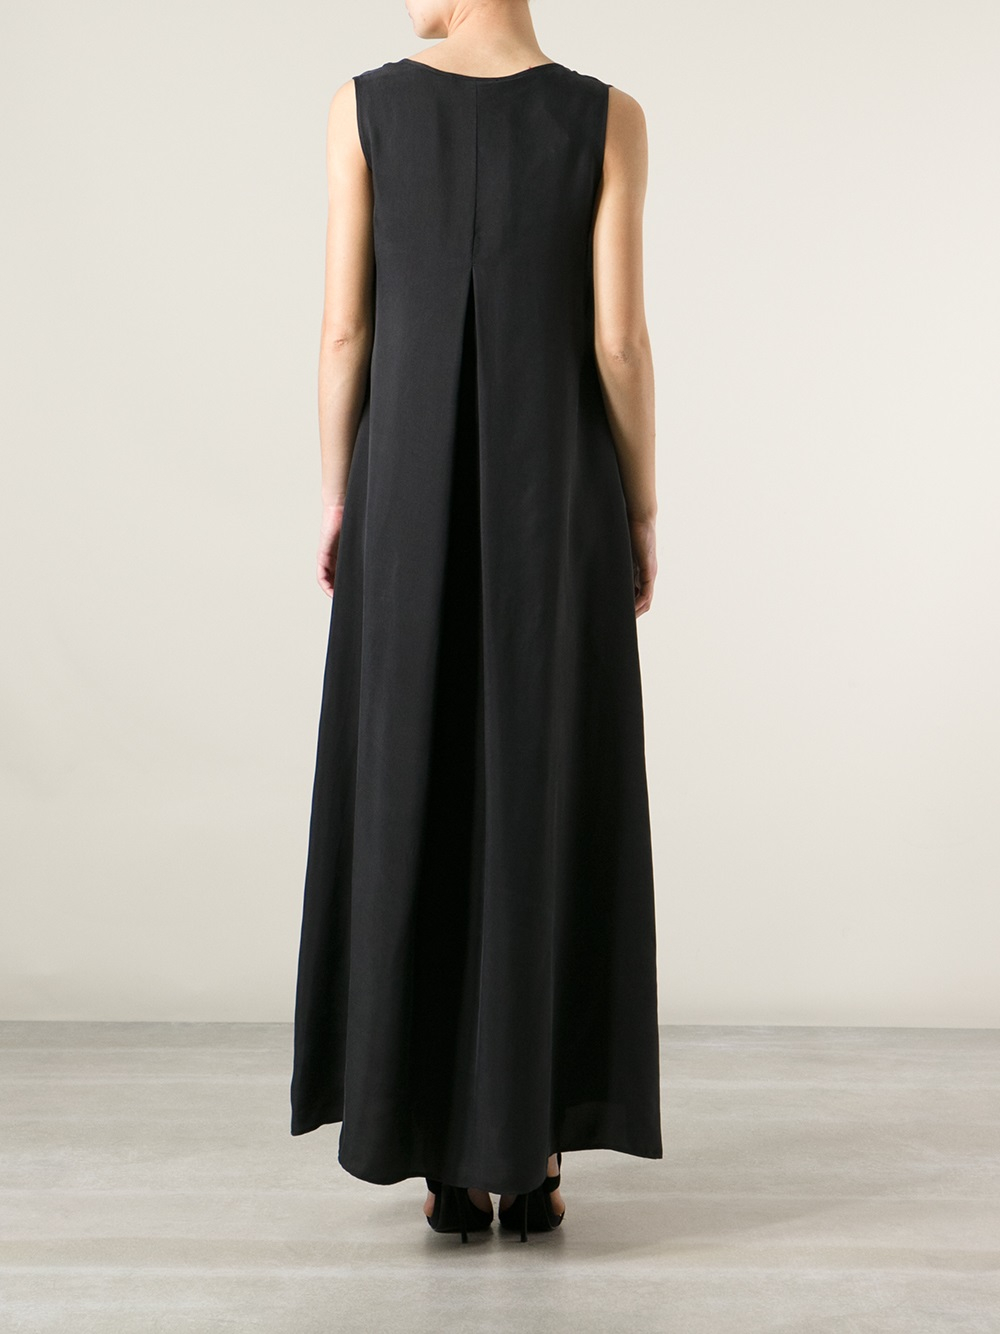 Max Mara Maxi Dress Cocktail Dresses 2016